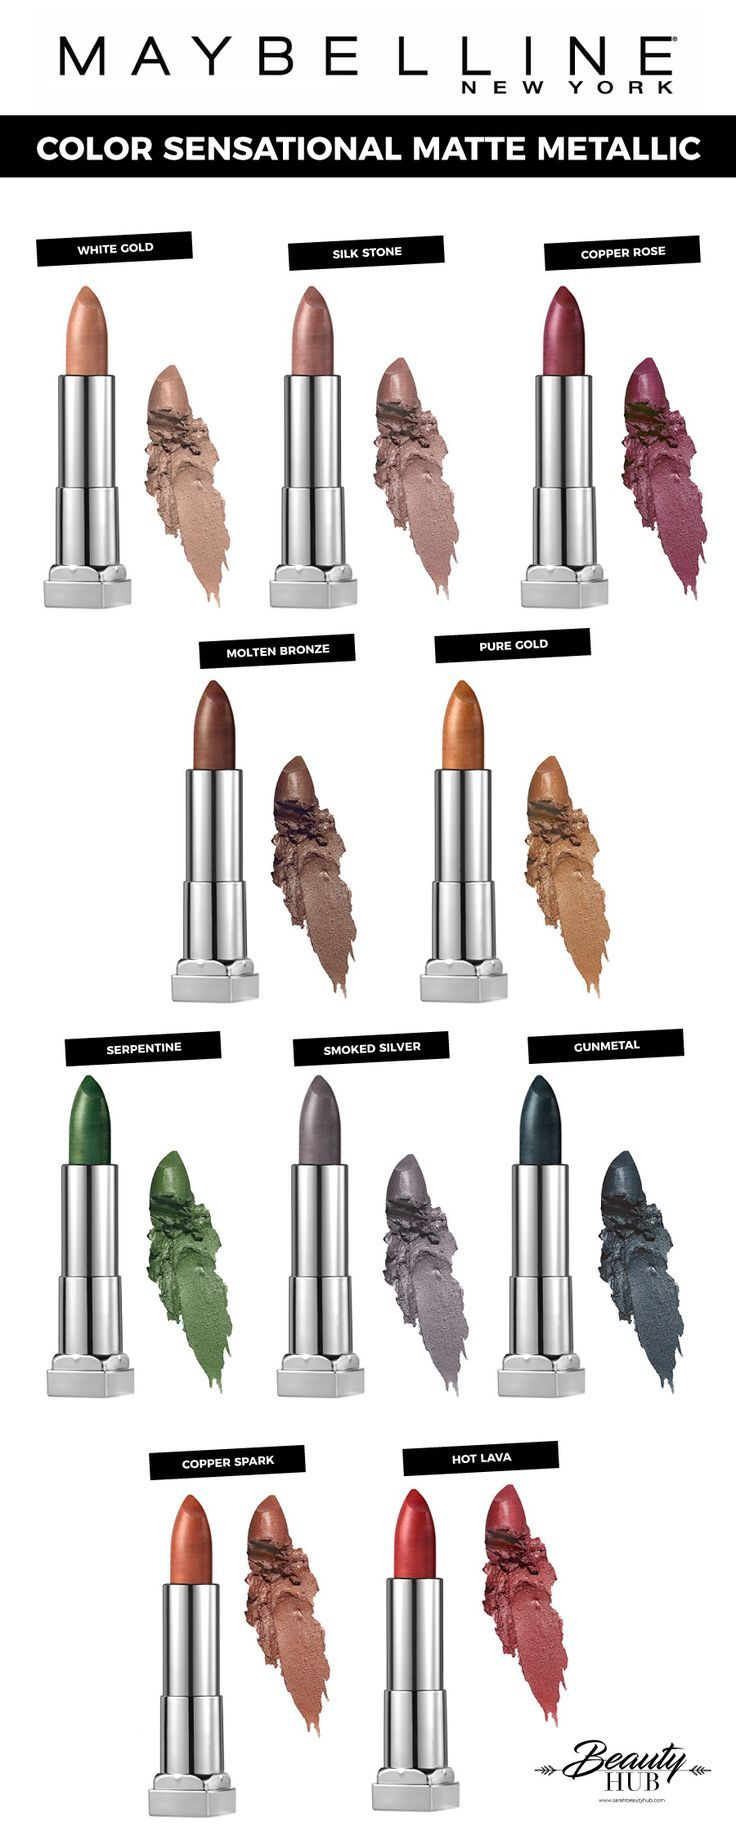 #Maybelline Color Sensational #Matte #Metallic >><< #MyLifeAsARockstar #lipstick #beauty